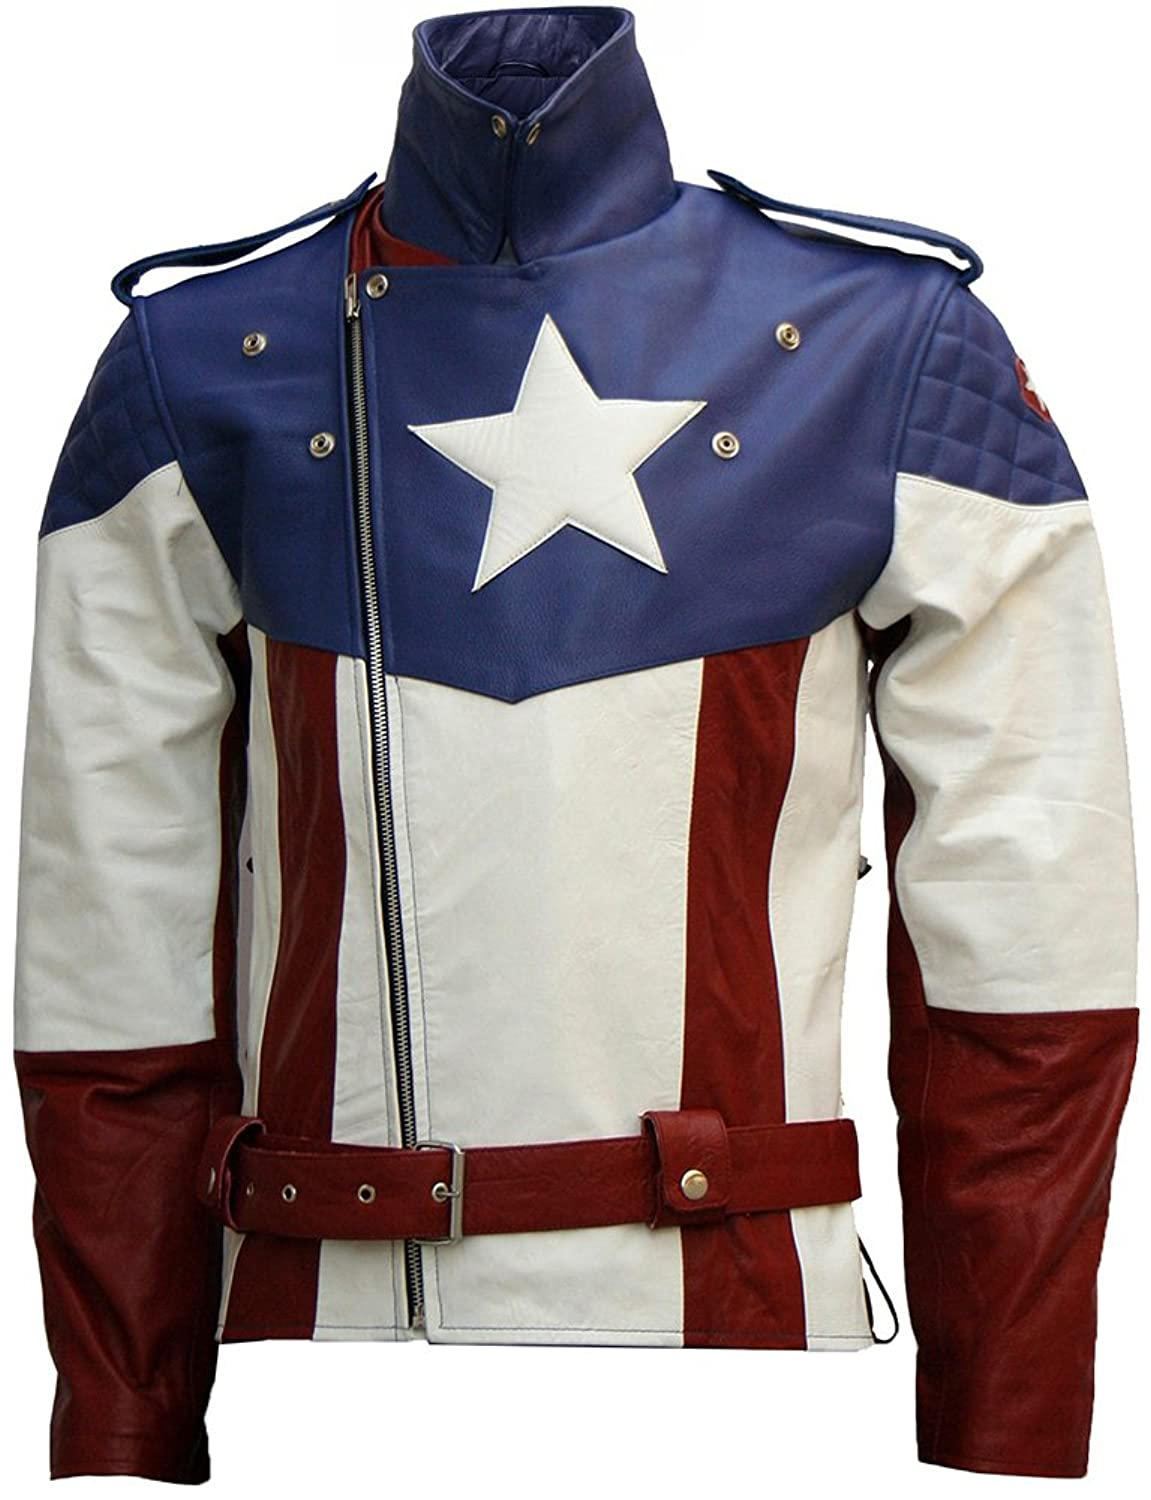 The First Avenger: Captain America Hot Leather Jacket - DeluxeAdultCostumes.com